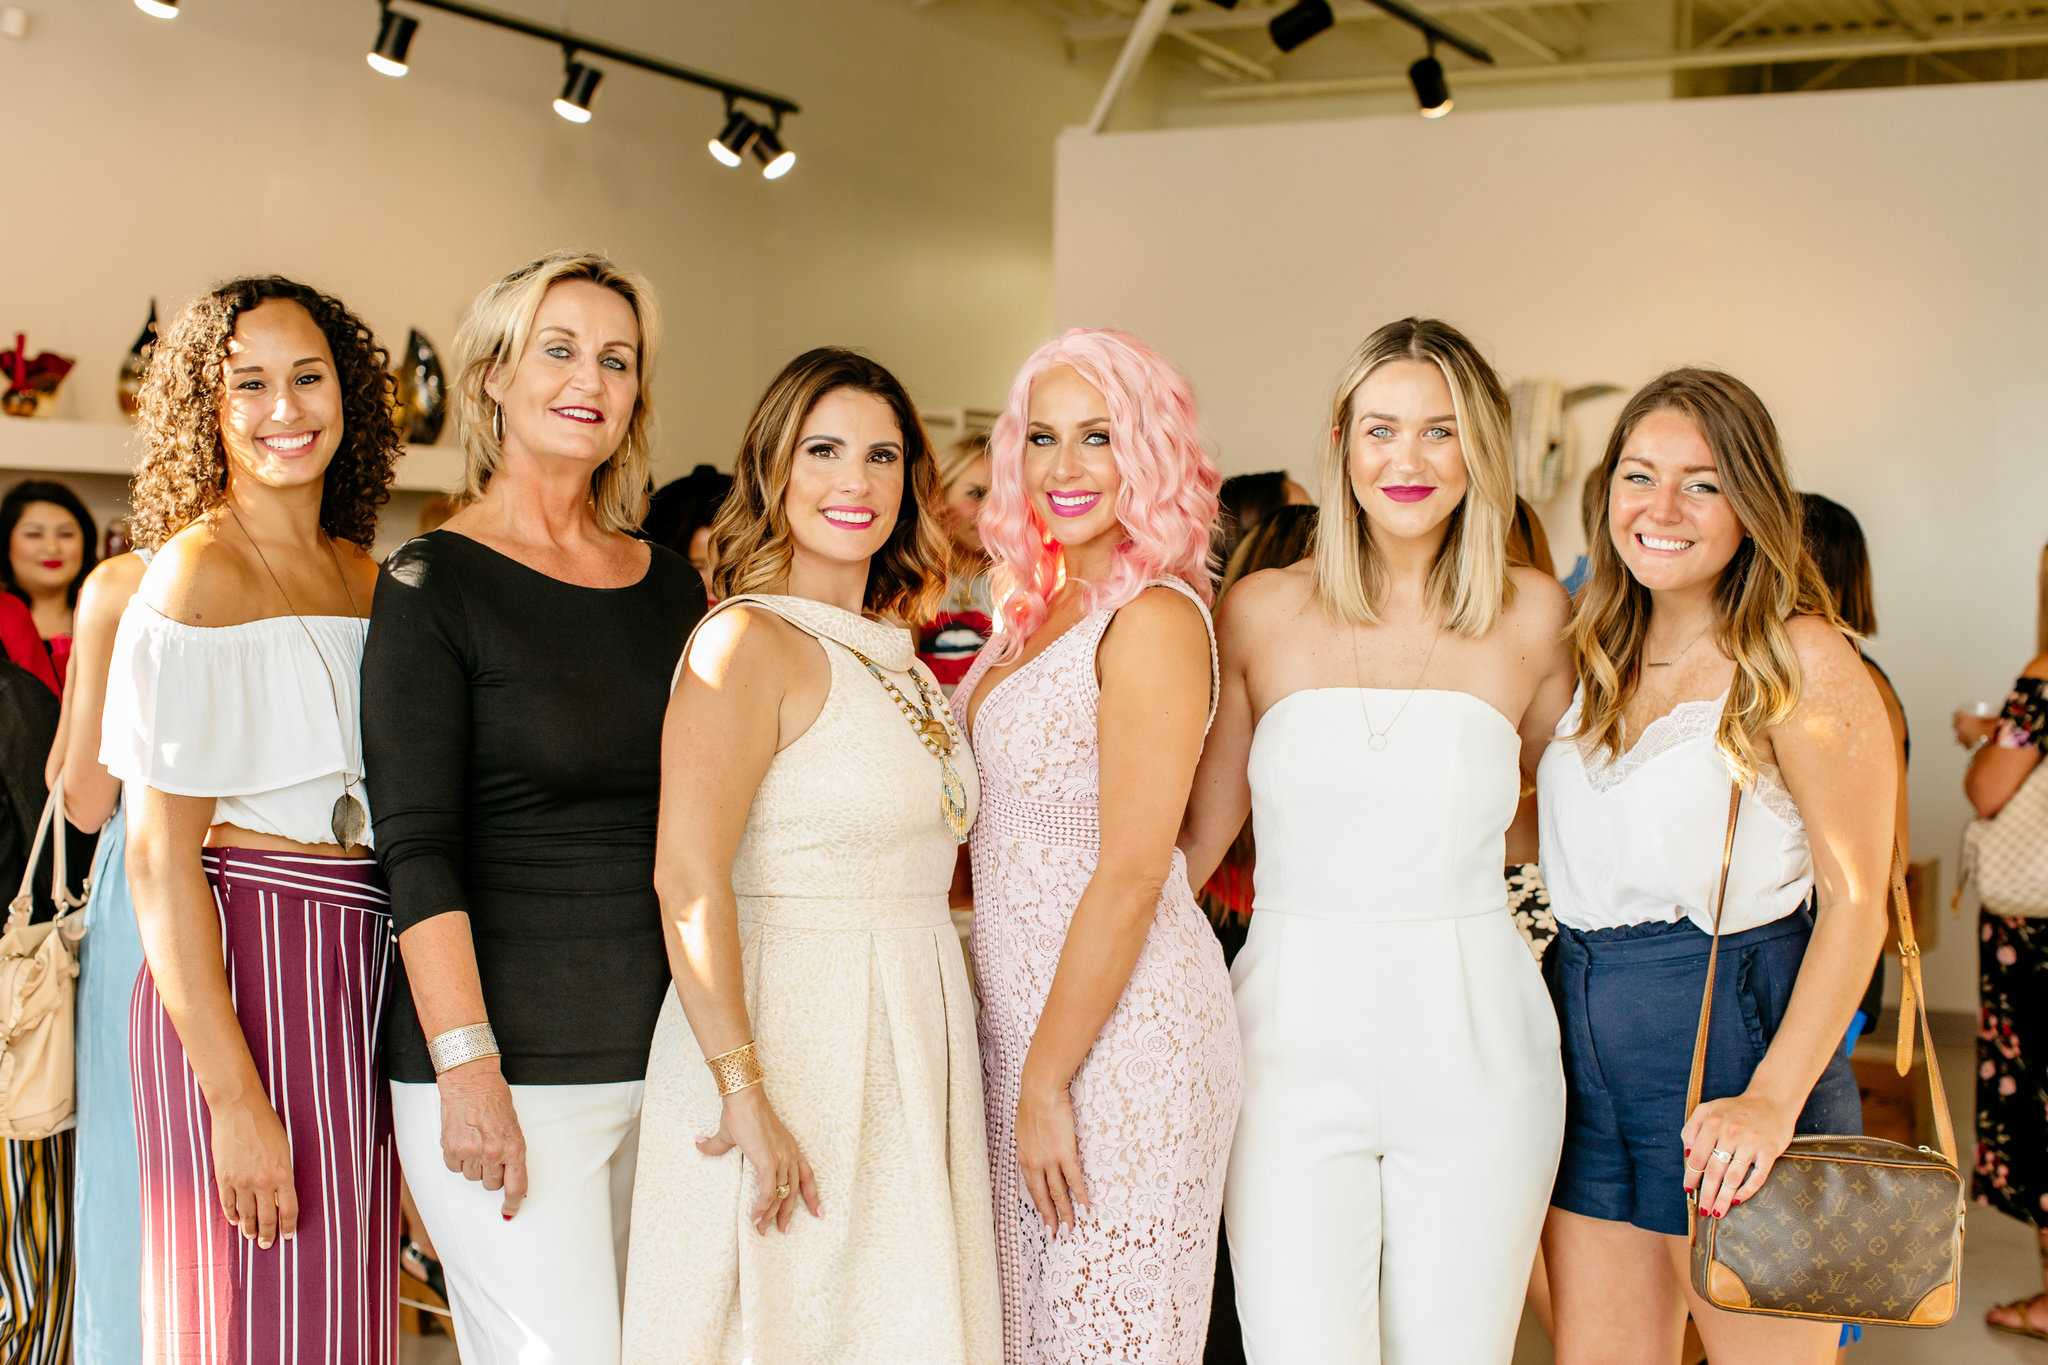 Alexa-Vossler-Photo_Dallas-Event-Photographer_Brite-Bar-Beauty-2018-Lipstick-Launch-Party-141.jpg